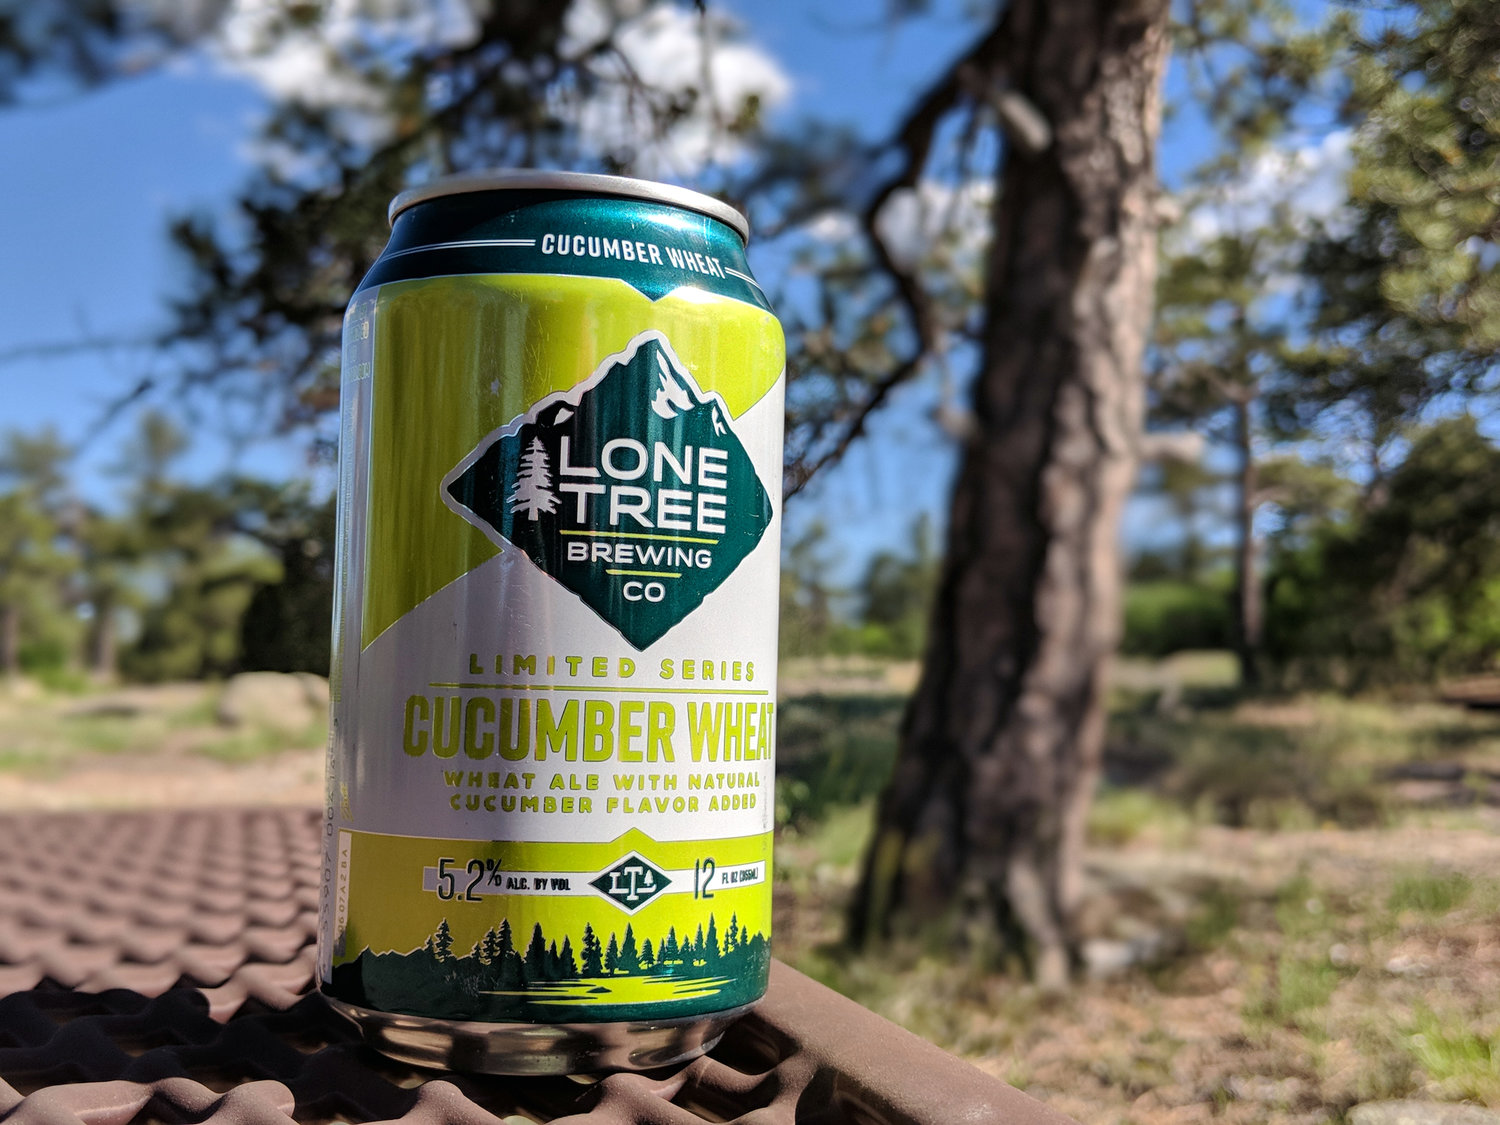 Lone Tree Brewing Co. Cucumber Wheat Returns For Spring